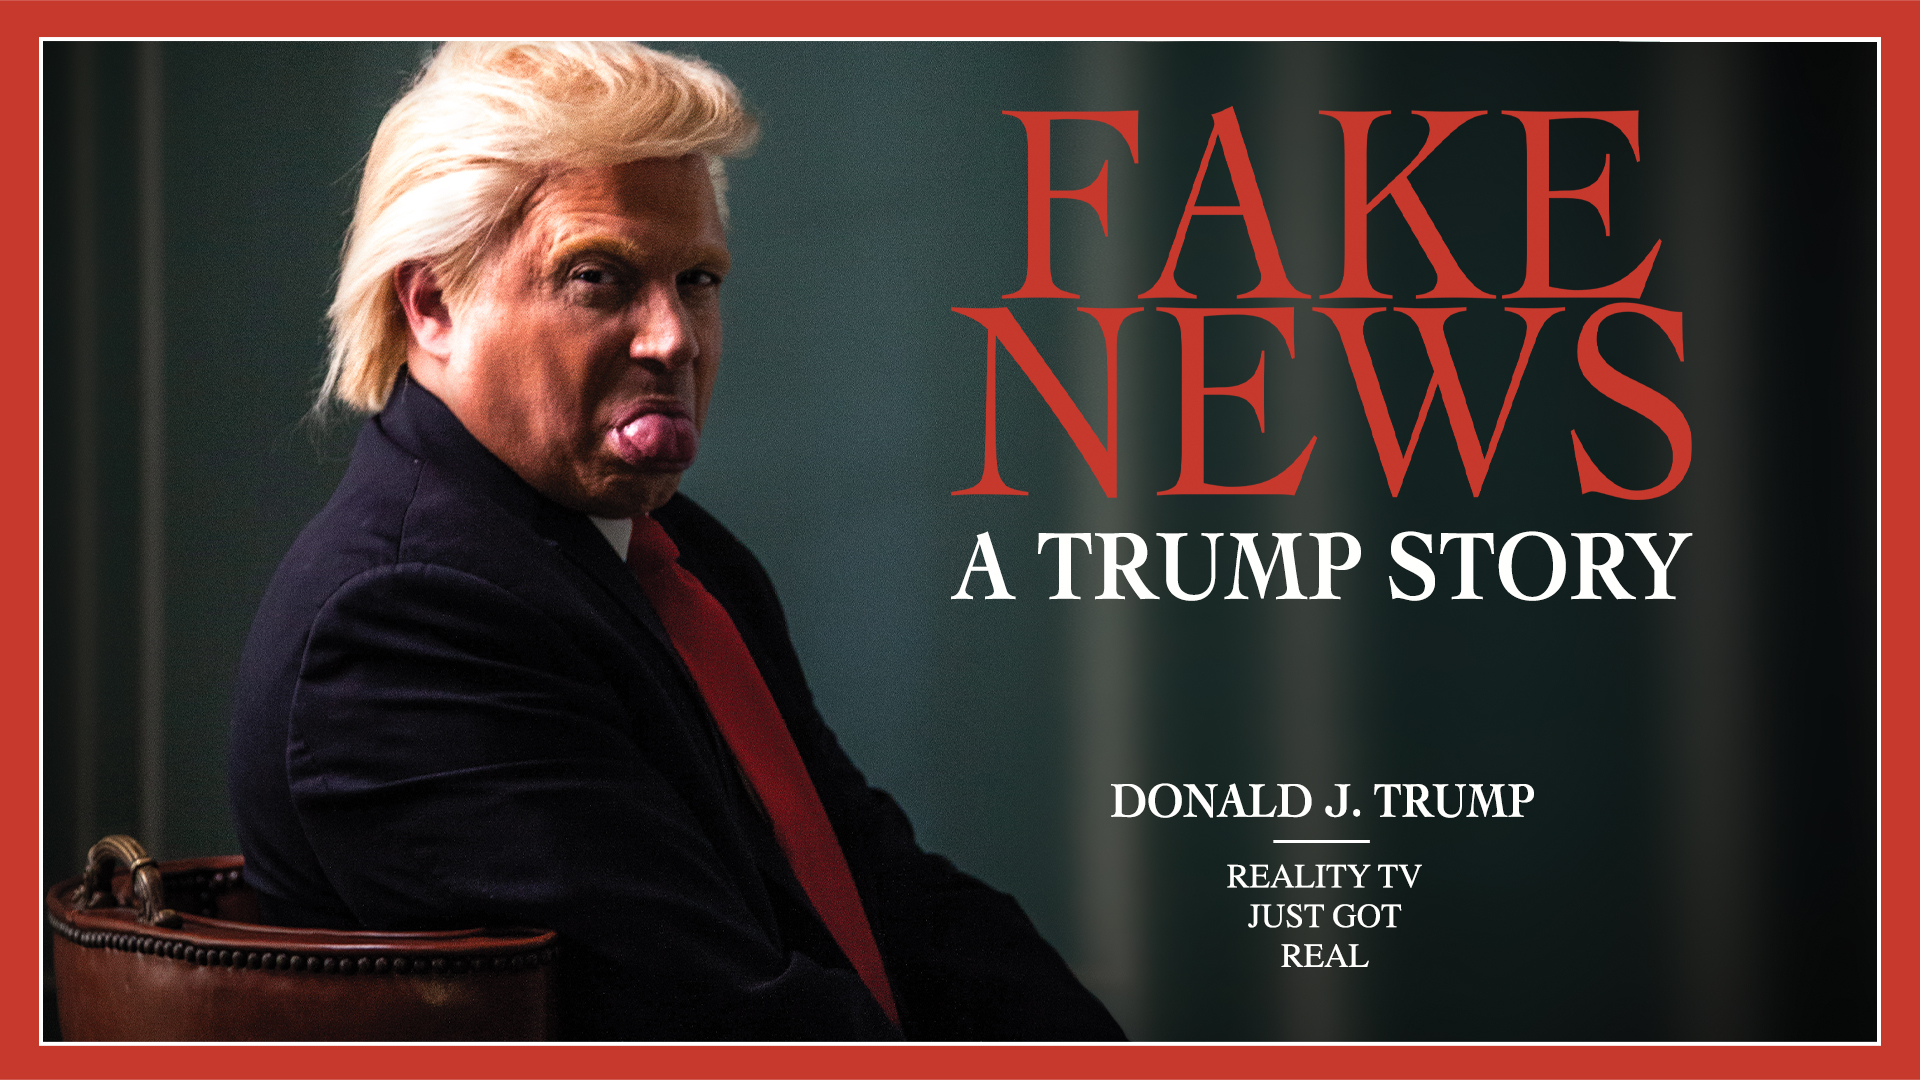 Fake News: A Trump Story